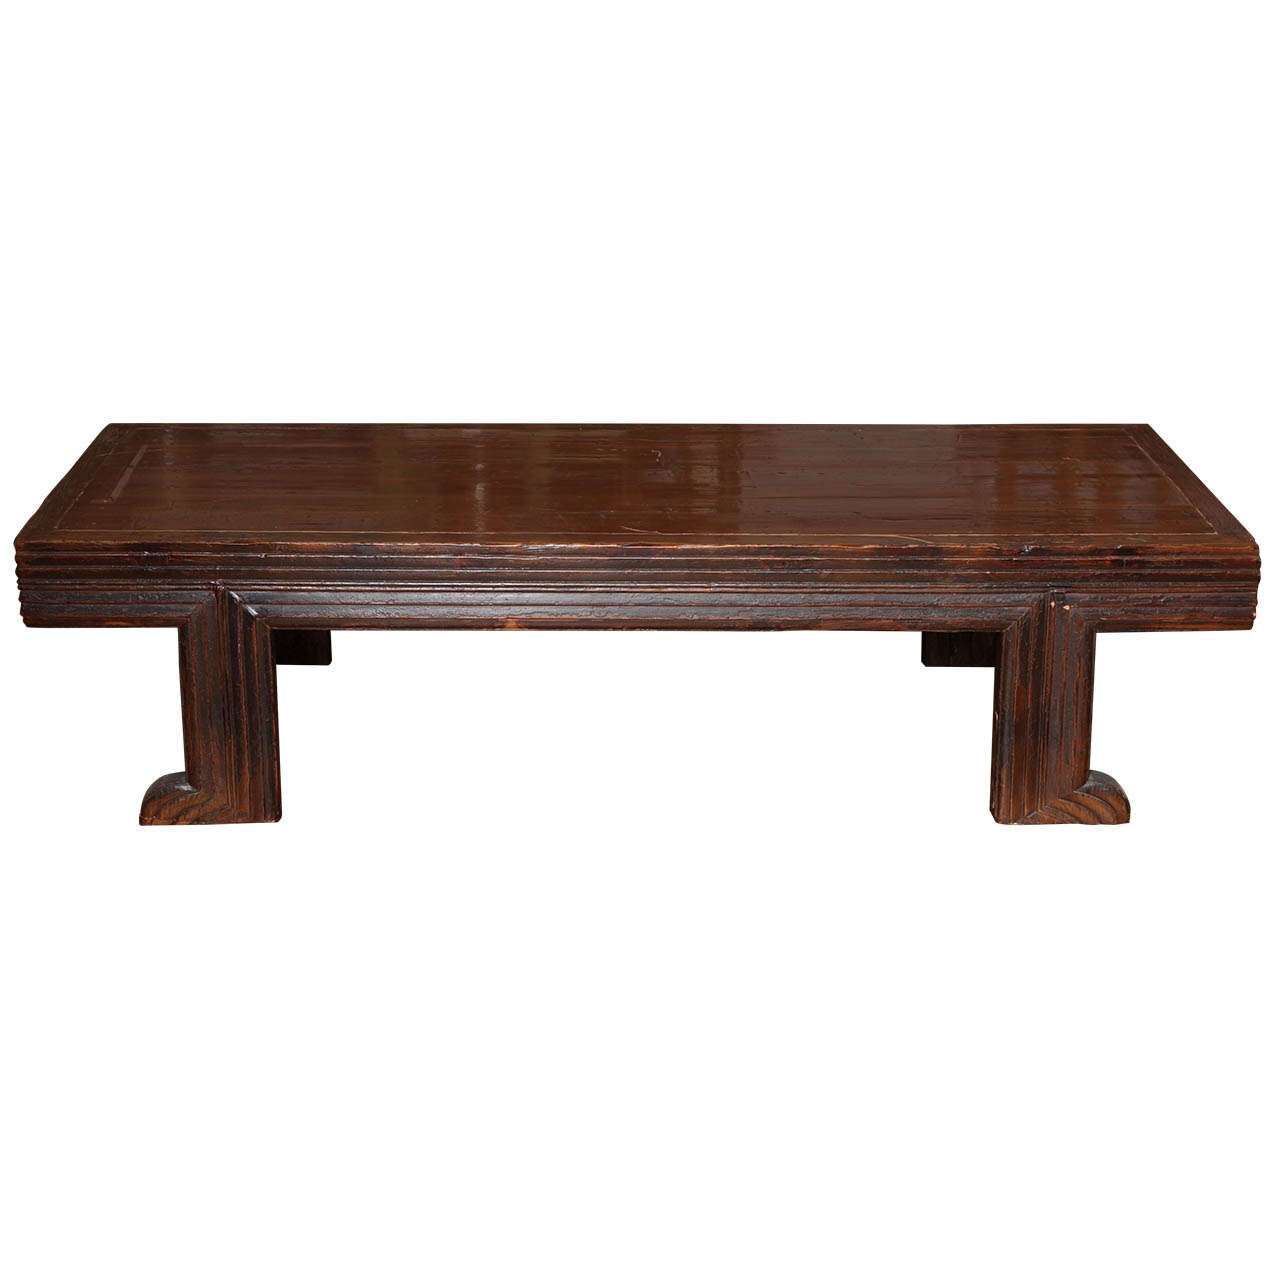 19th Century, Long Chinese Fine Elmwood Coffee Table with Unusual Recessed Legs